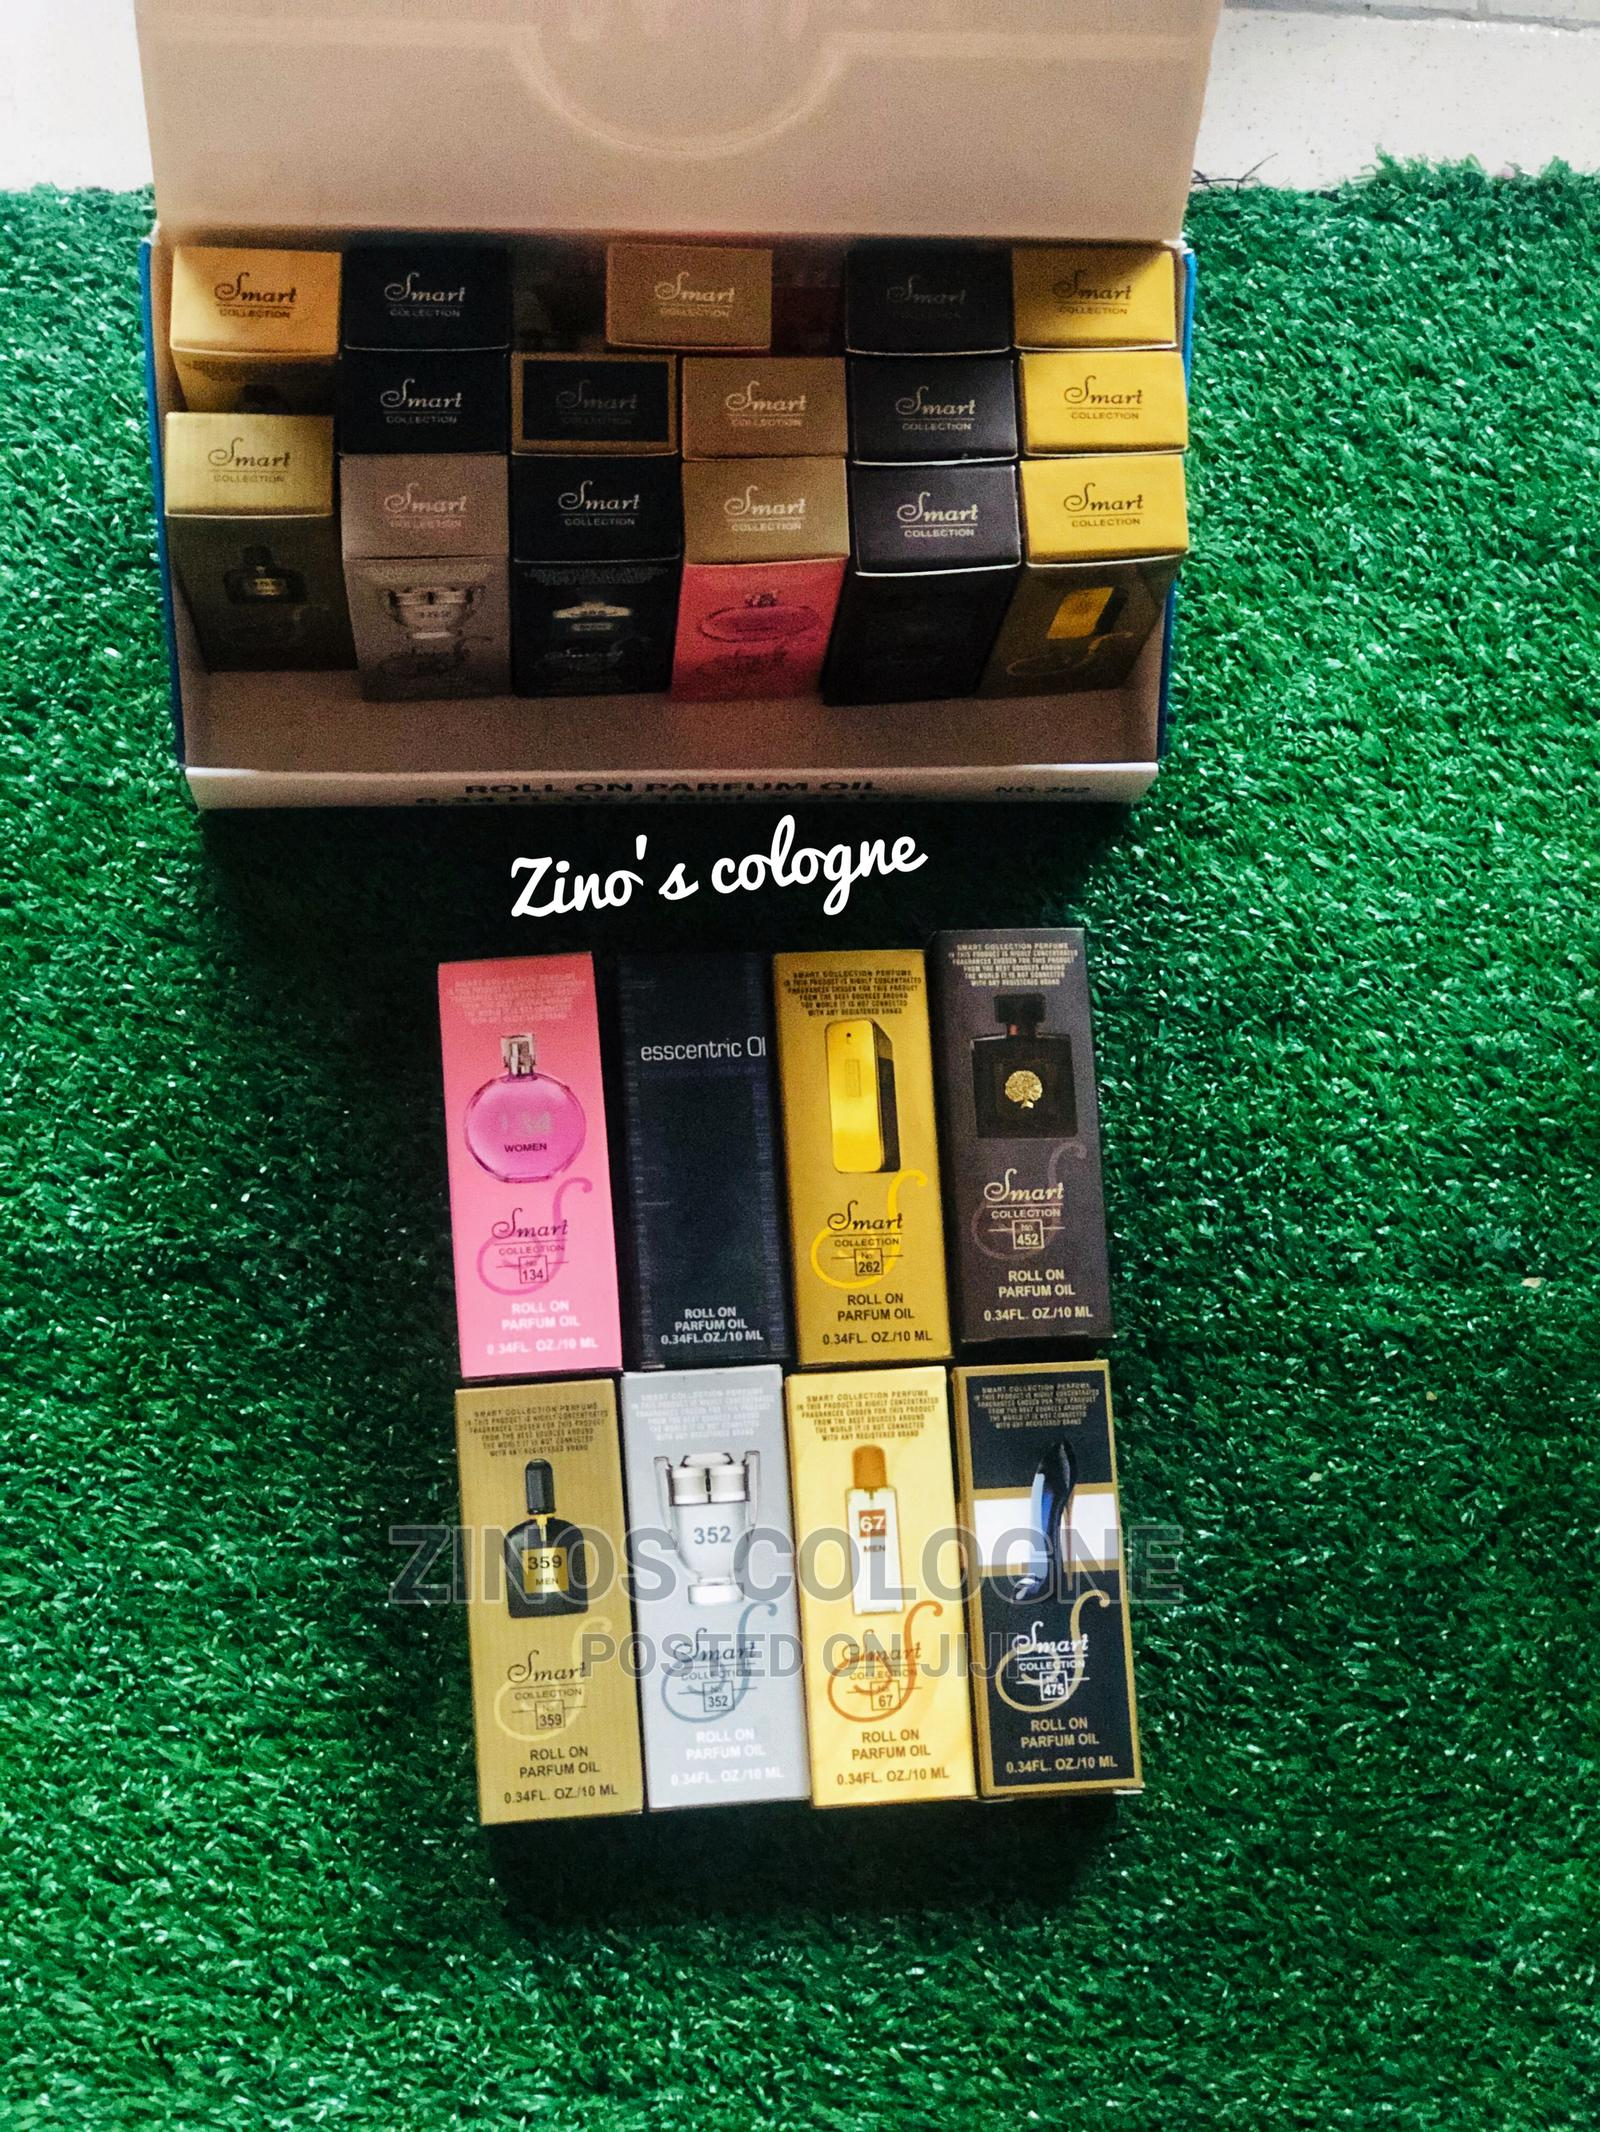 10ml Smart Collection